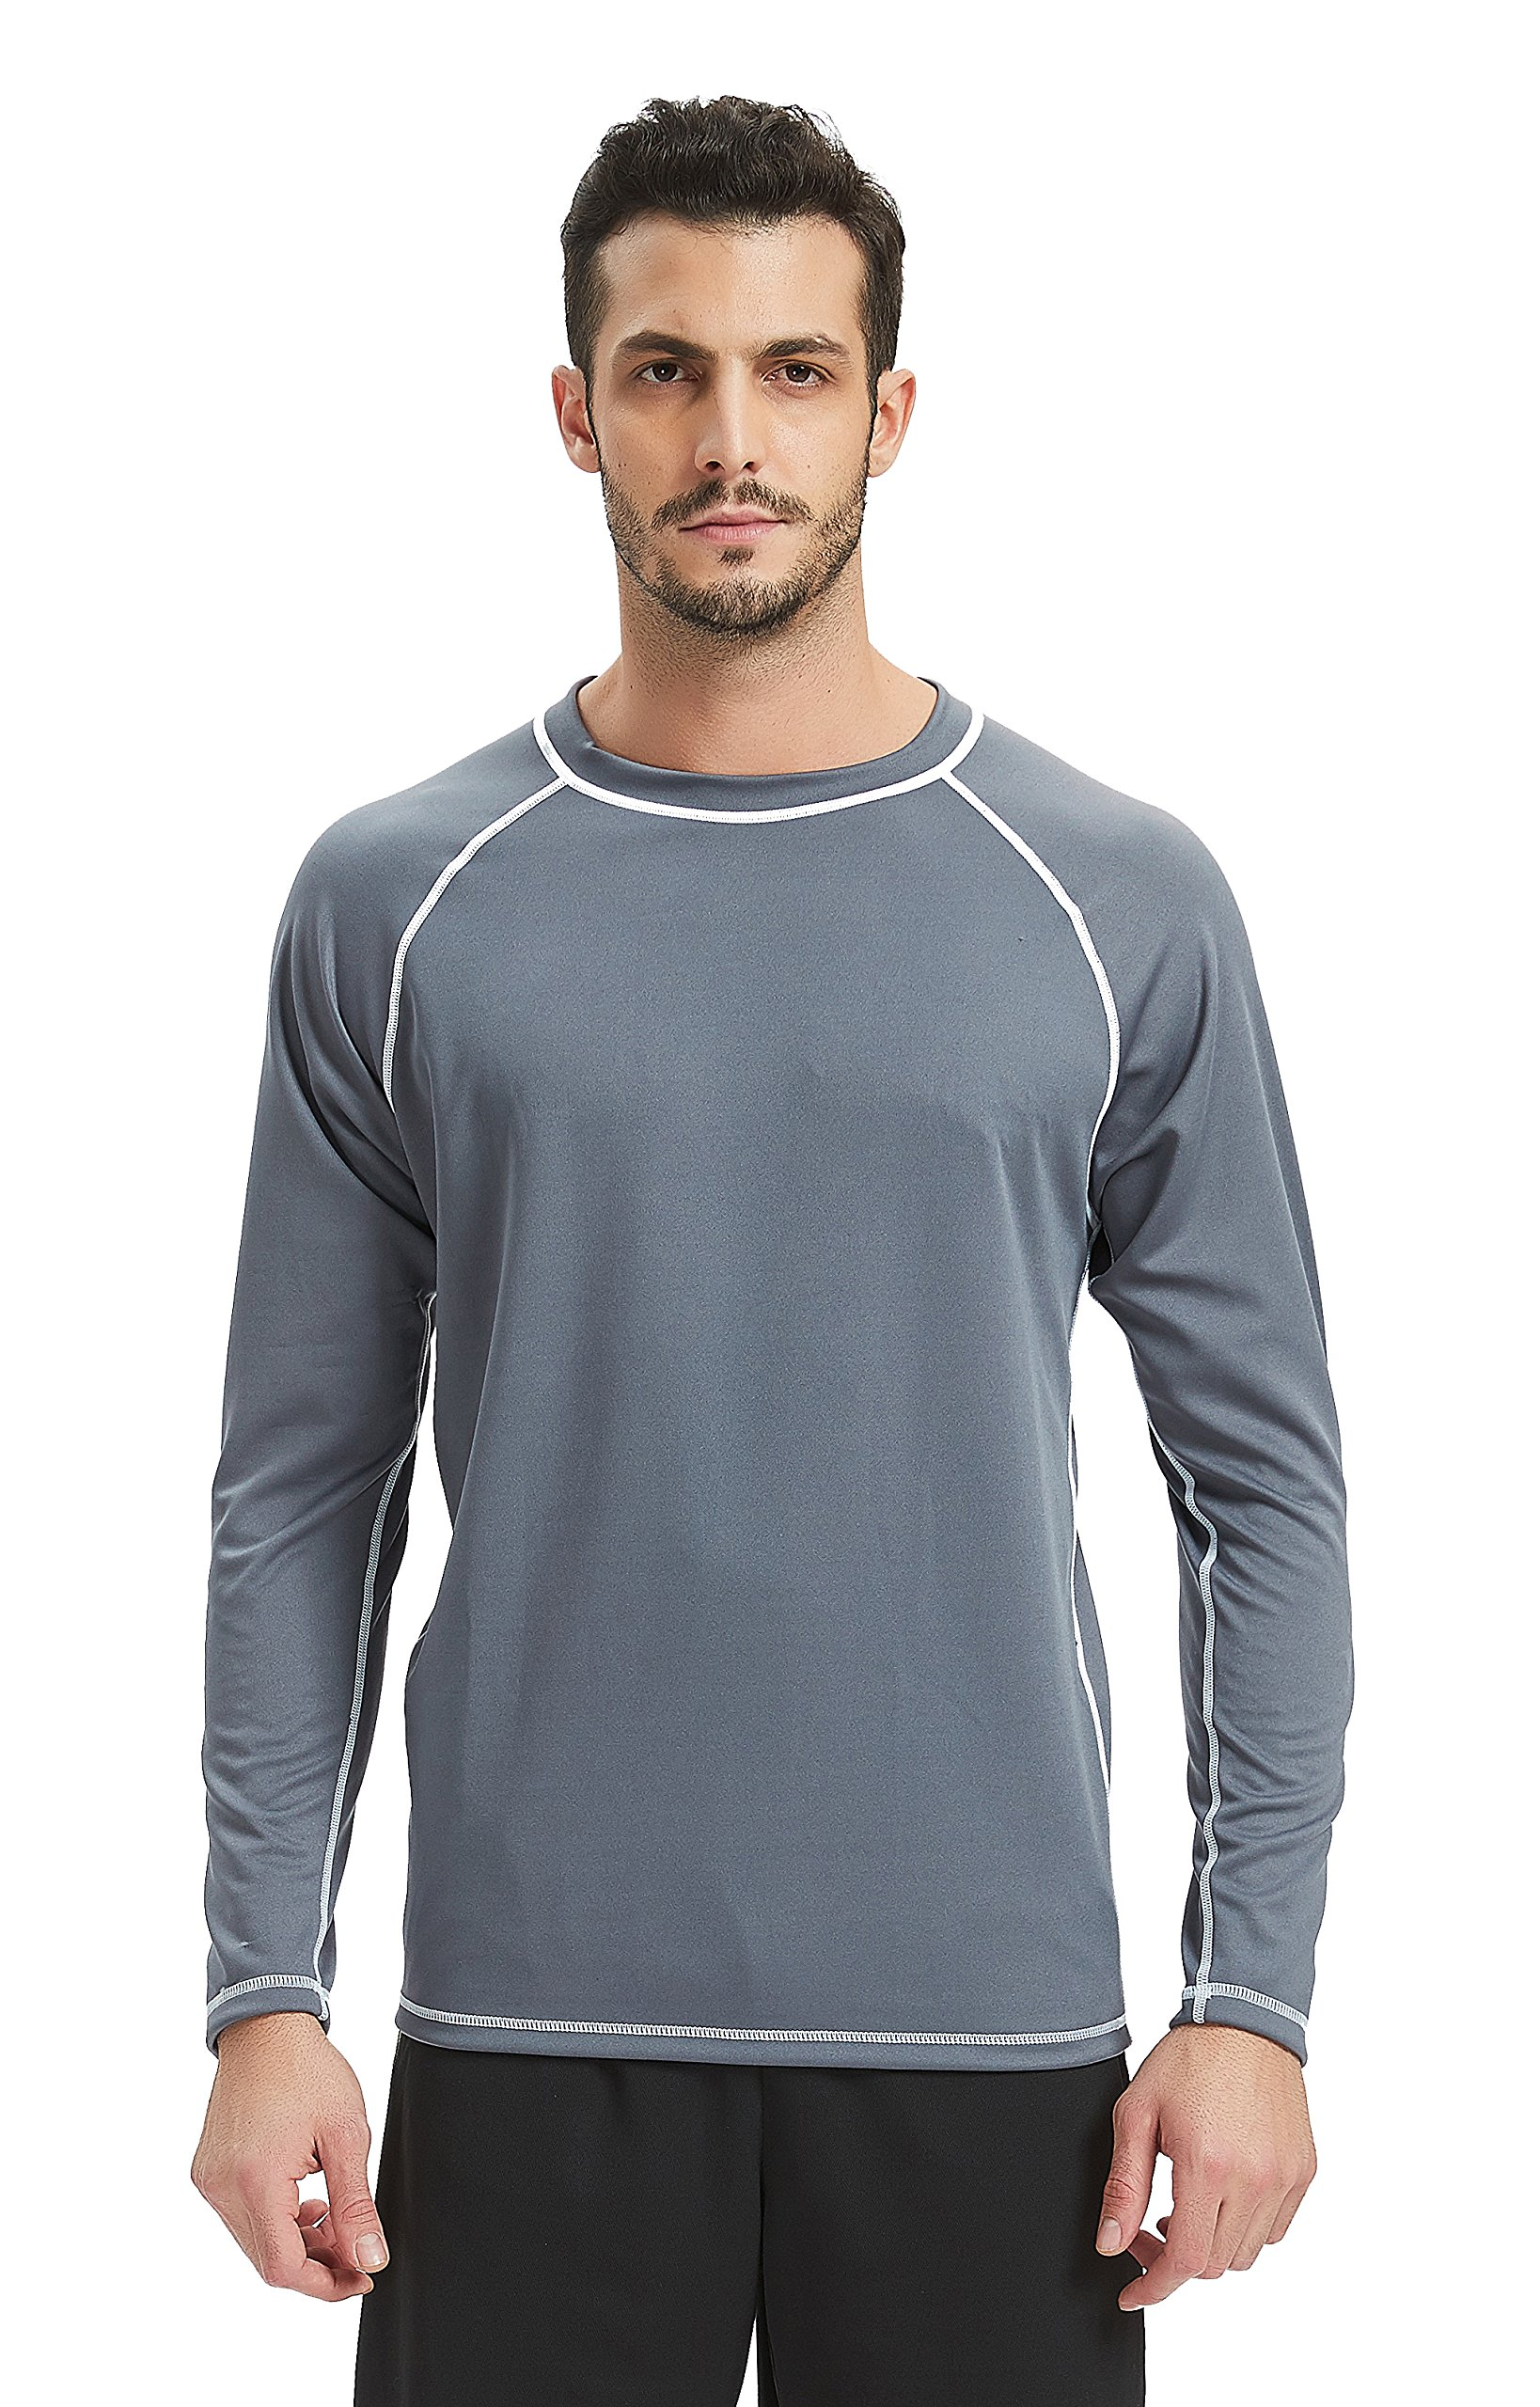 Lemorecn Men's UPF 50+ Easy Long Sleeve Rashguard Swim Shirt (5021grey-S)